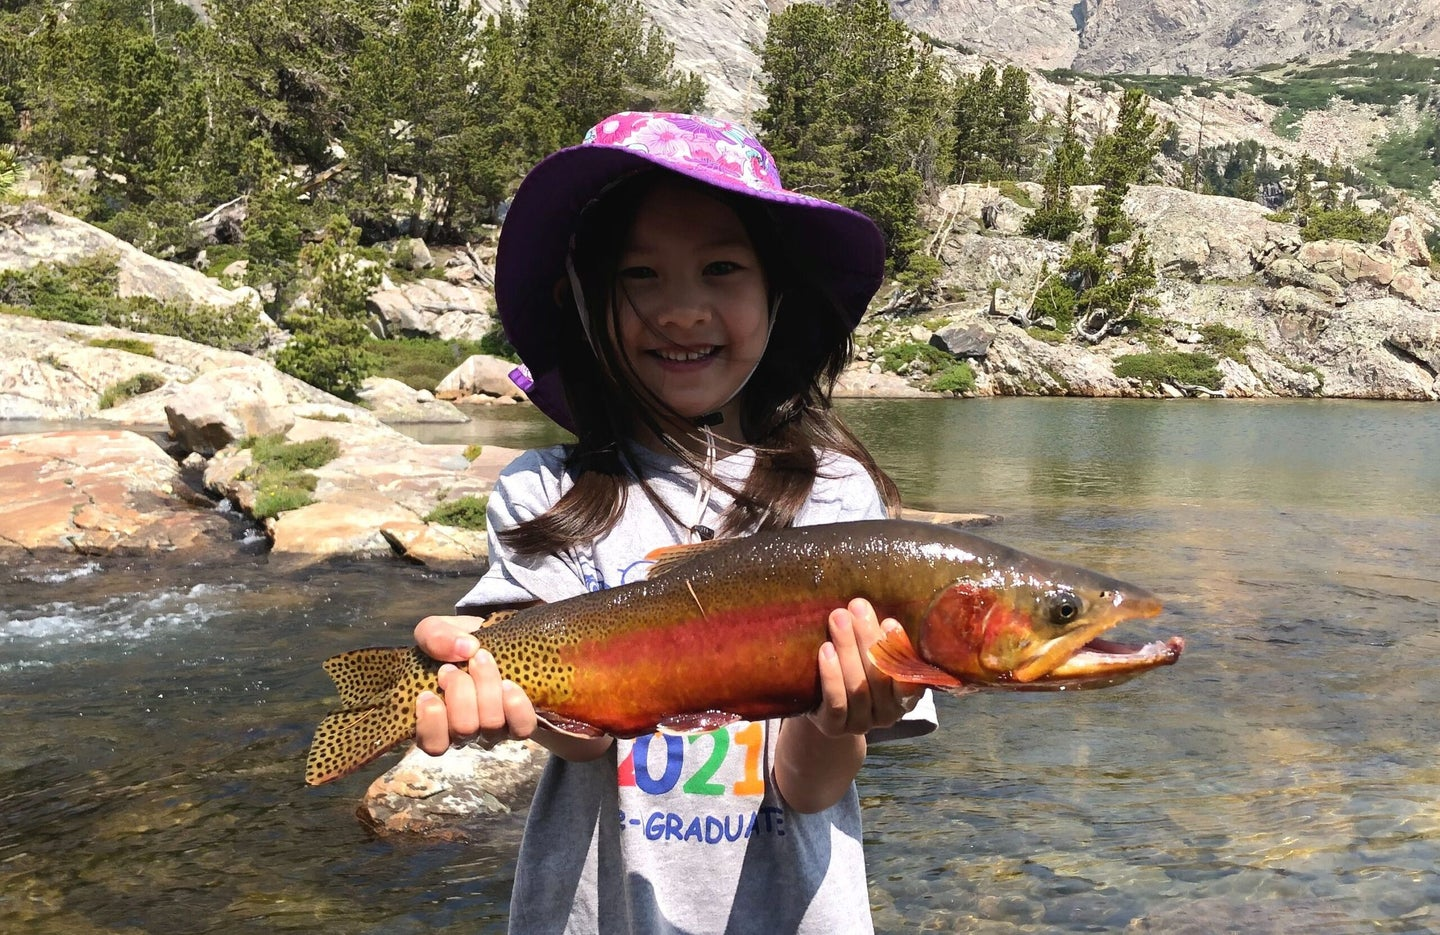 Girl holding record golden trout next to a lake.